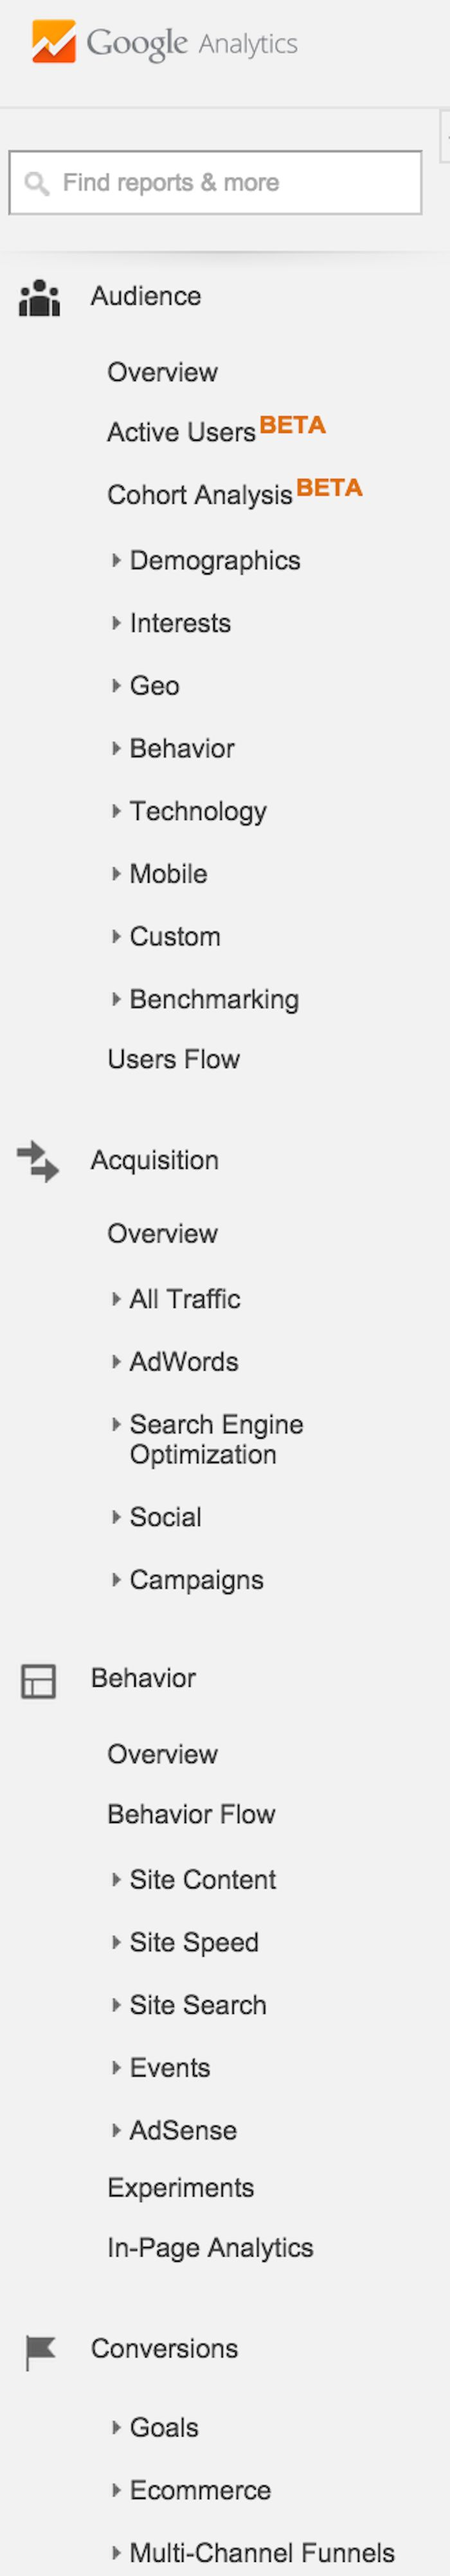 types of google analytics reports